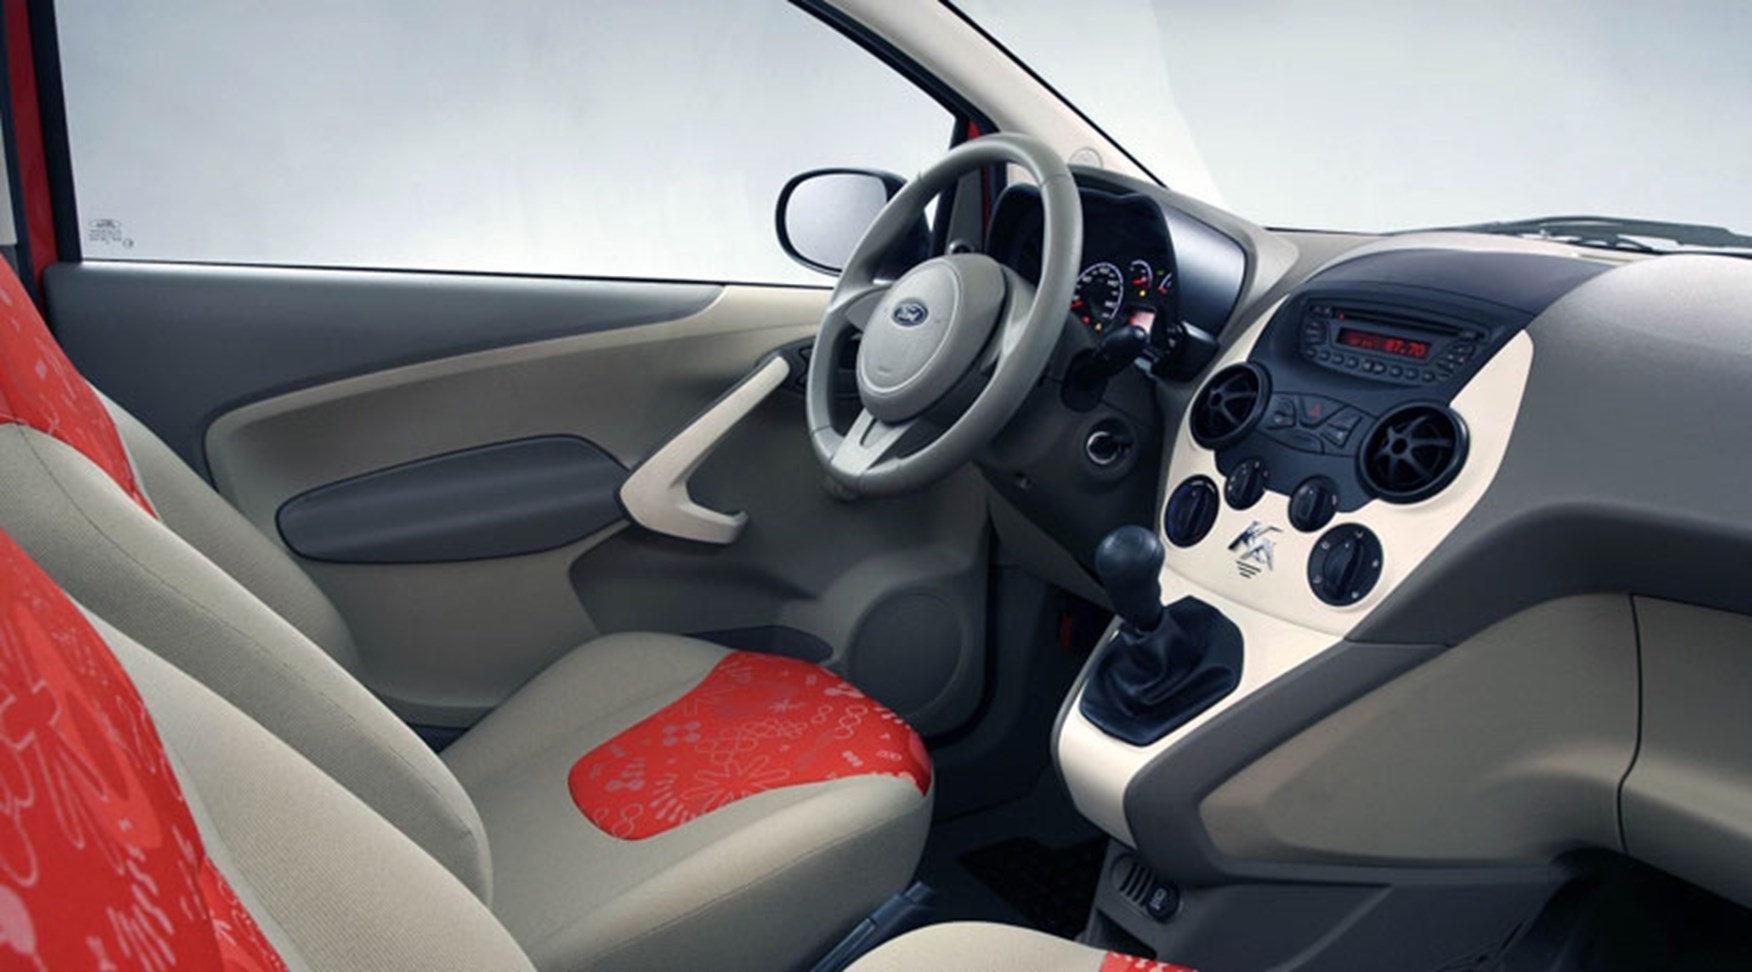 Ford Ka Interior Blue Oval Design Chief Martin Smith Says It Has The Kinetic Design Language Of The Exterior